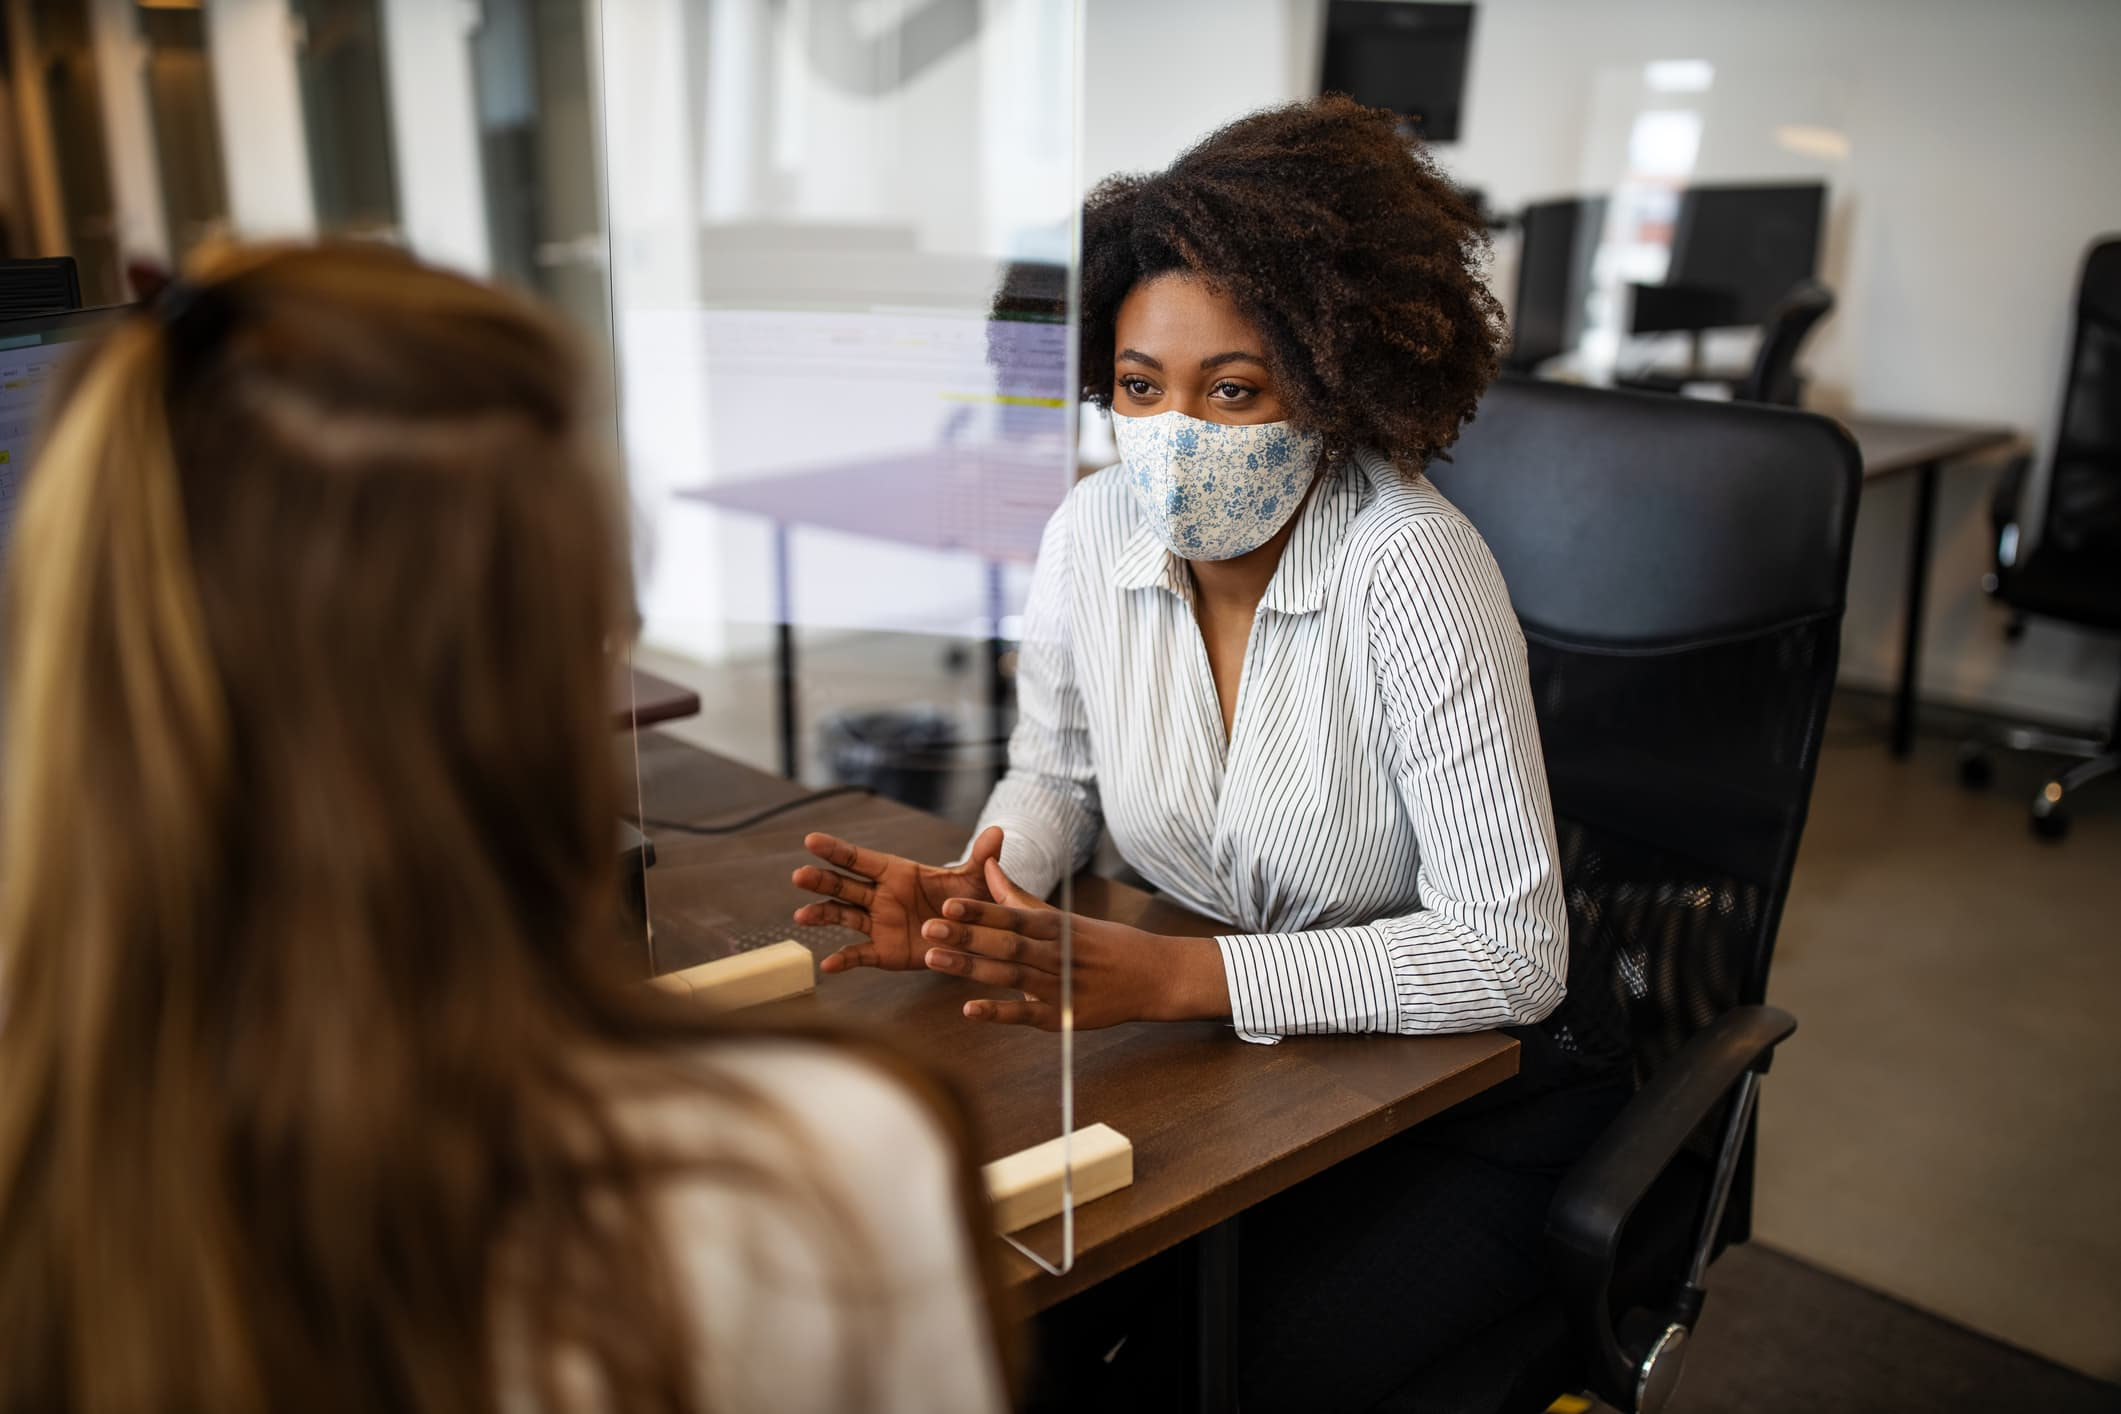 Advisors are changing how they interact with clients due to pandemic